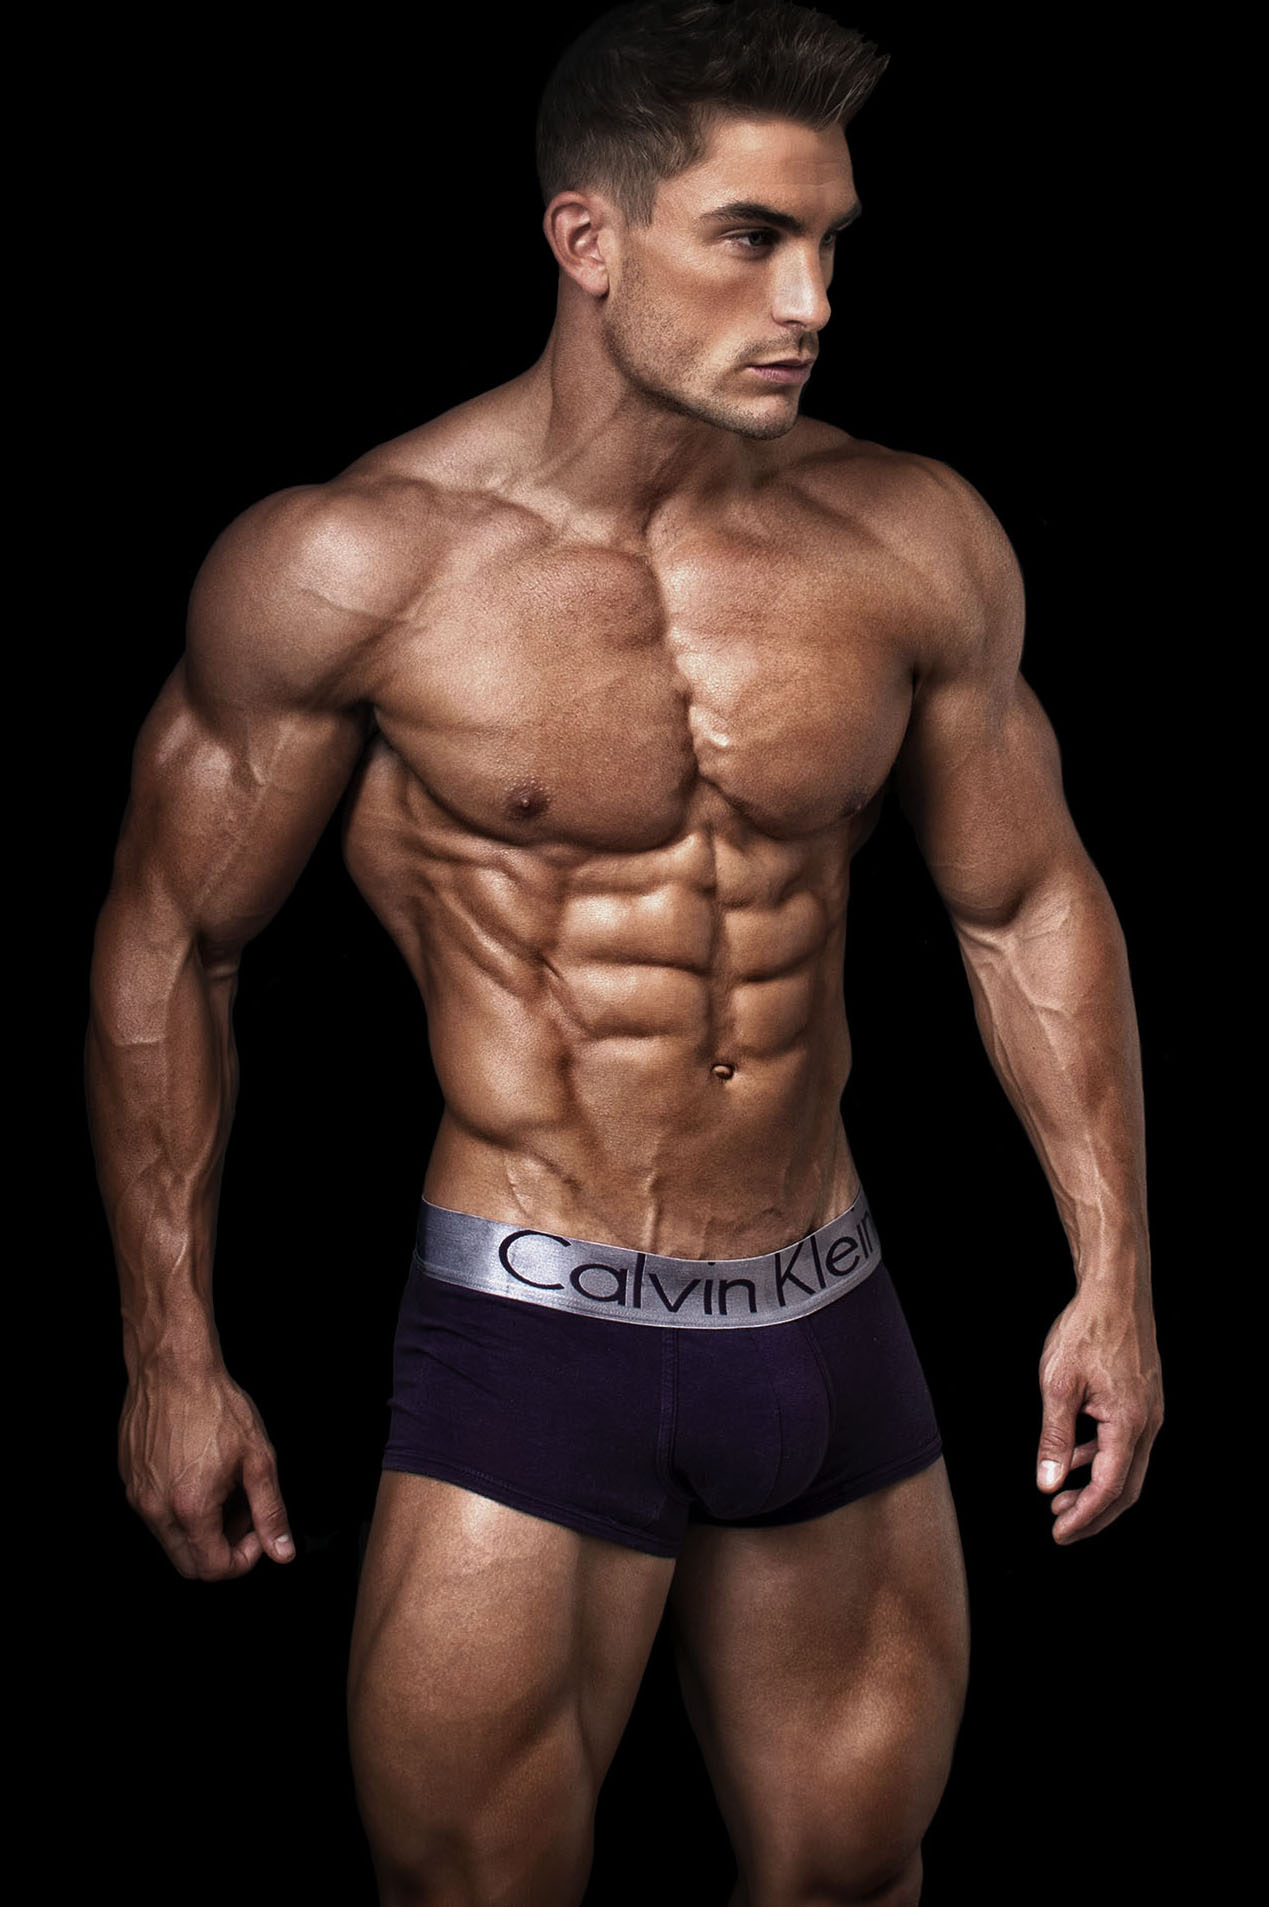 Ryan Terry - The Best Pics Of Fitness Model RyanJTerry's ...